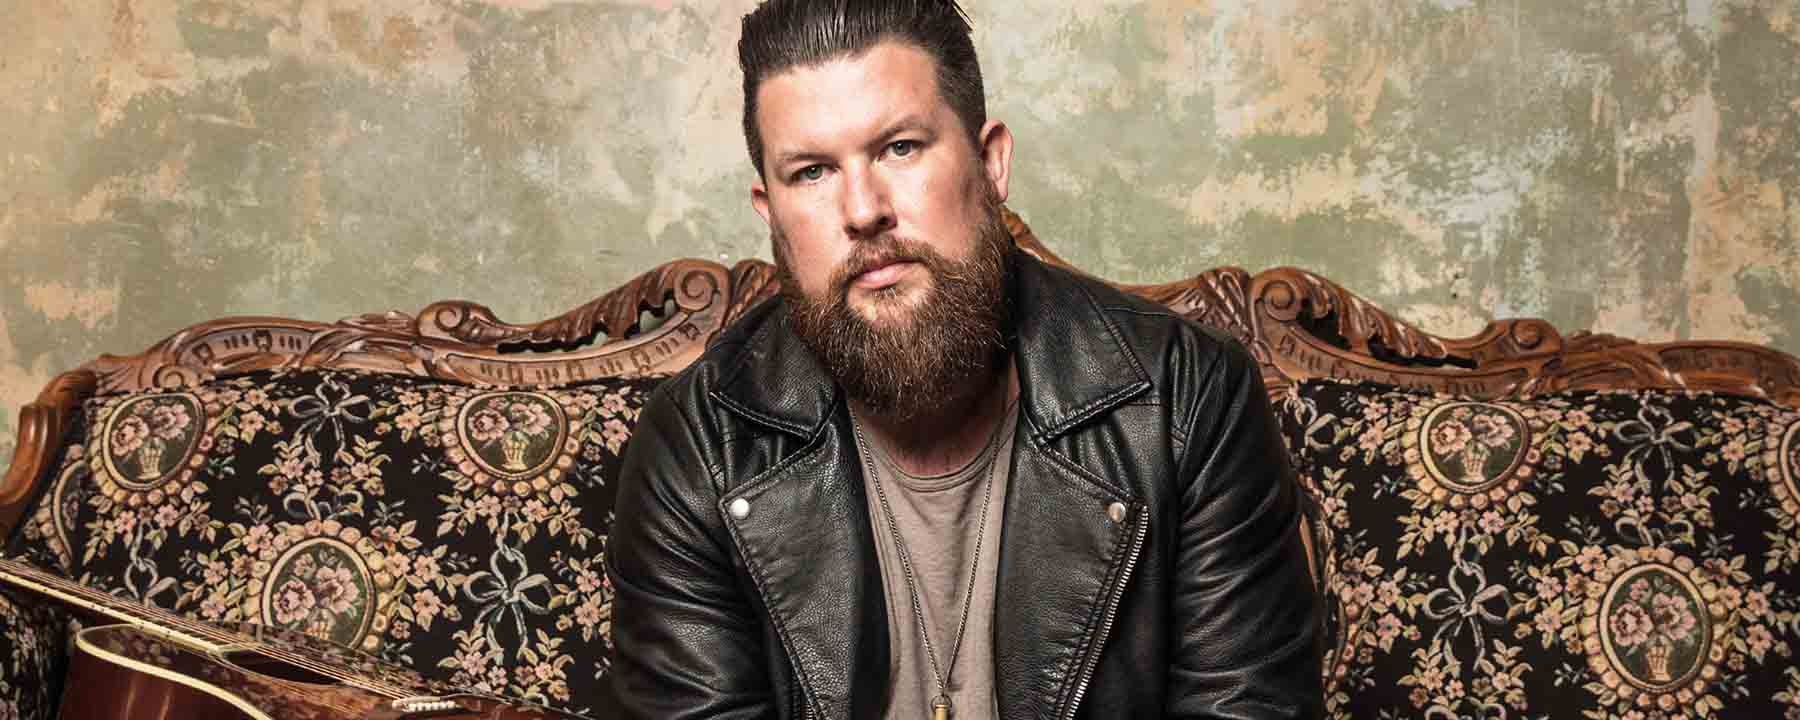 A Rock Star Redeemed The Story Of Zach Williams And